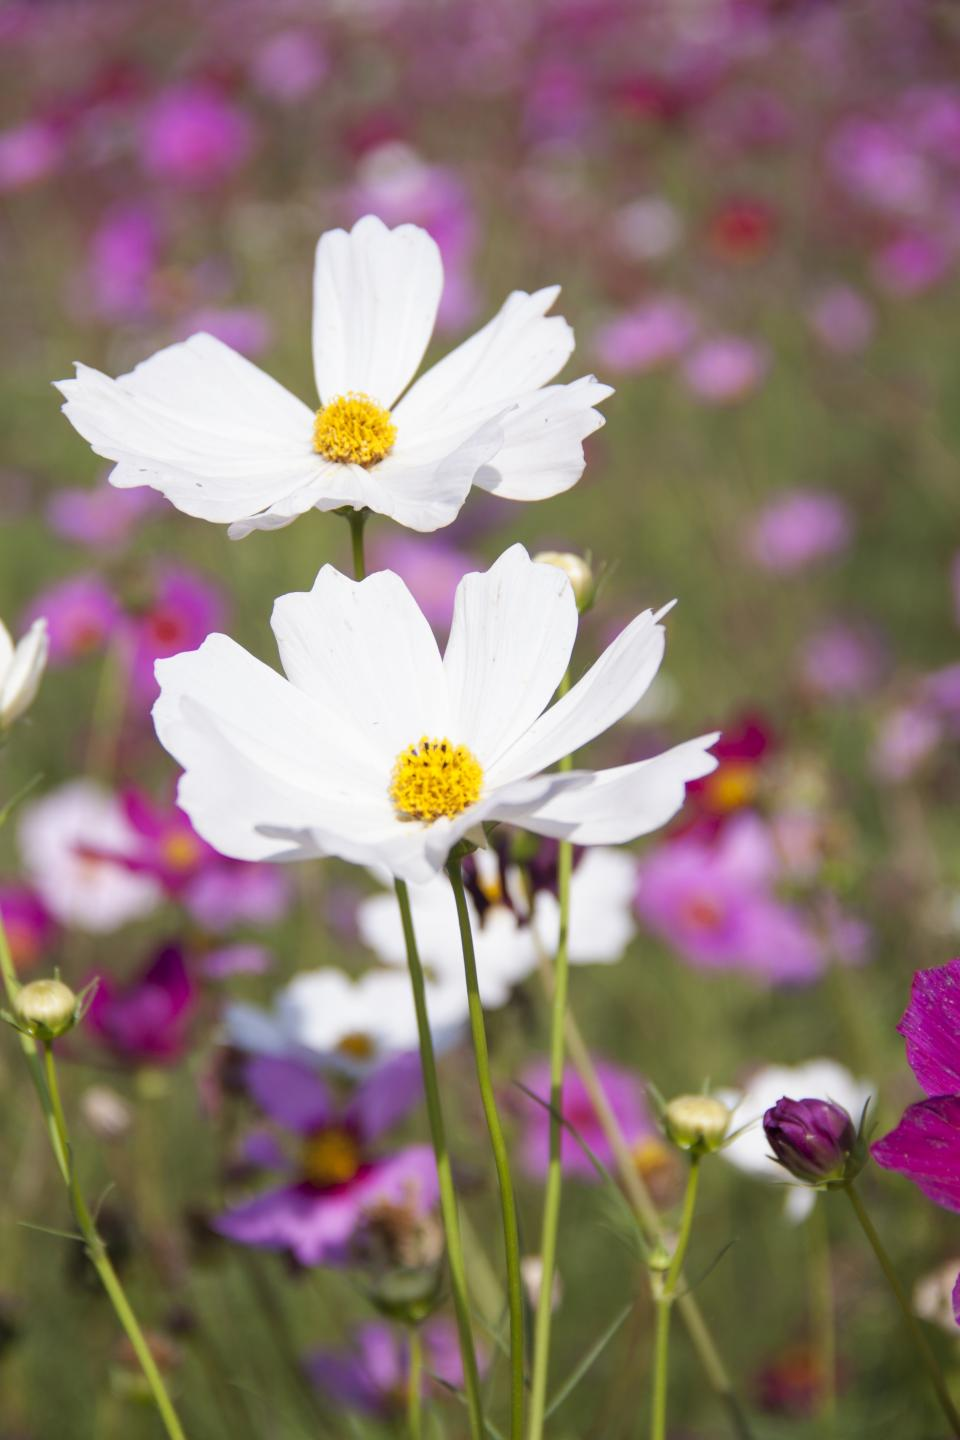 flowers nature blossoms field bed white purple stems stalks petals leaves grass still bokeh outdoors